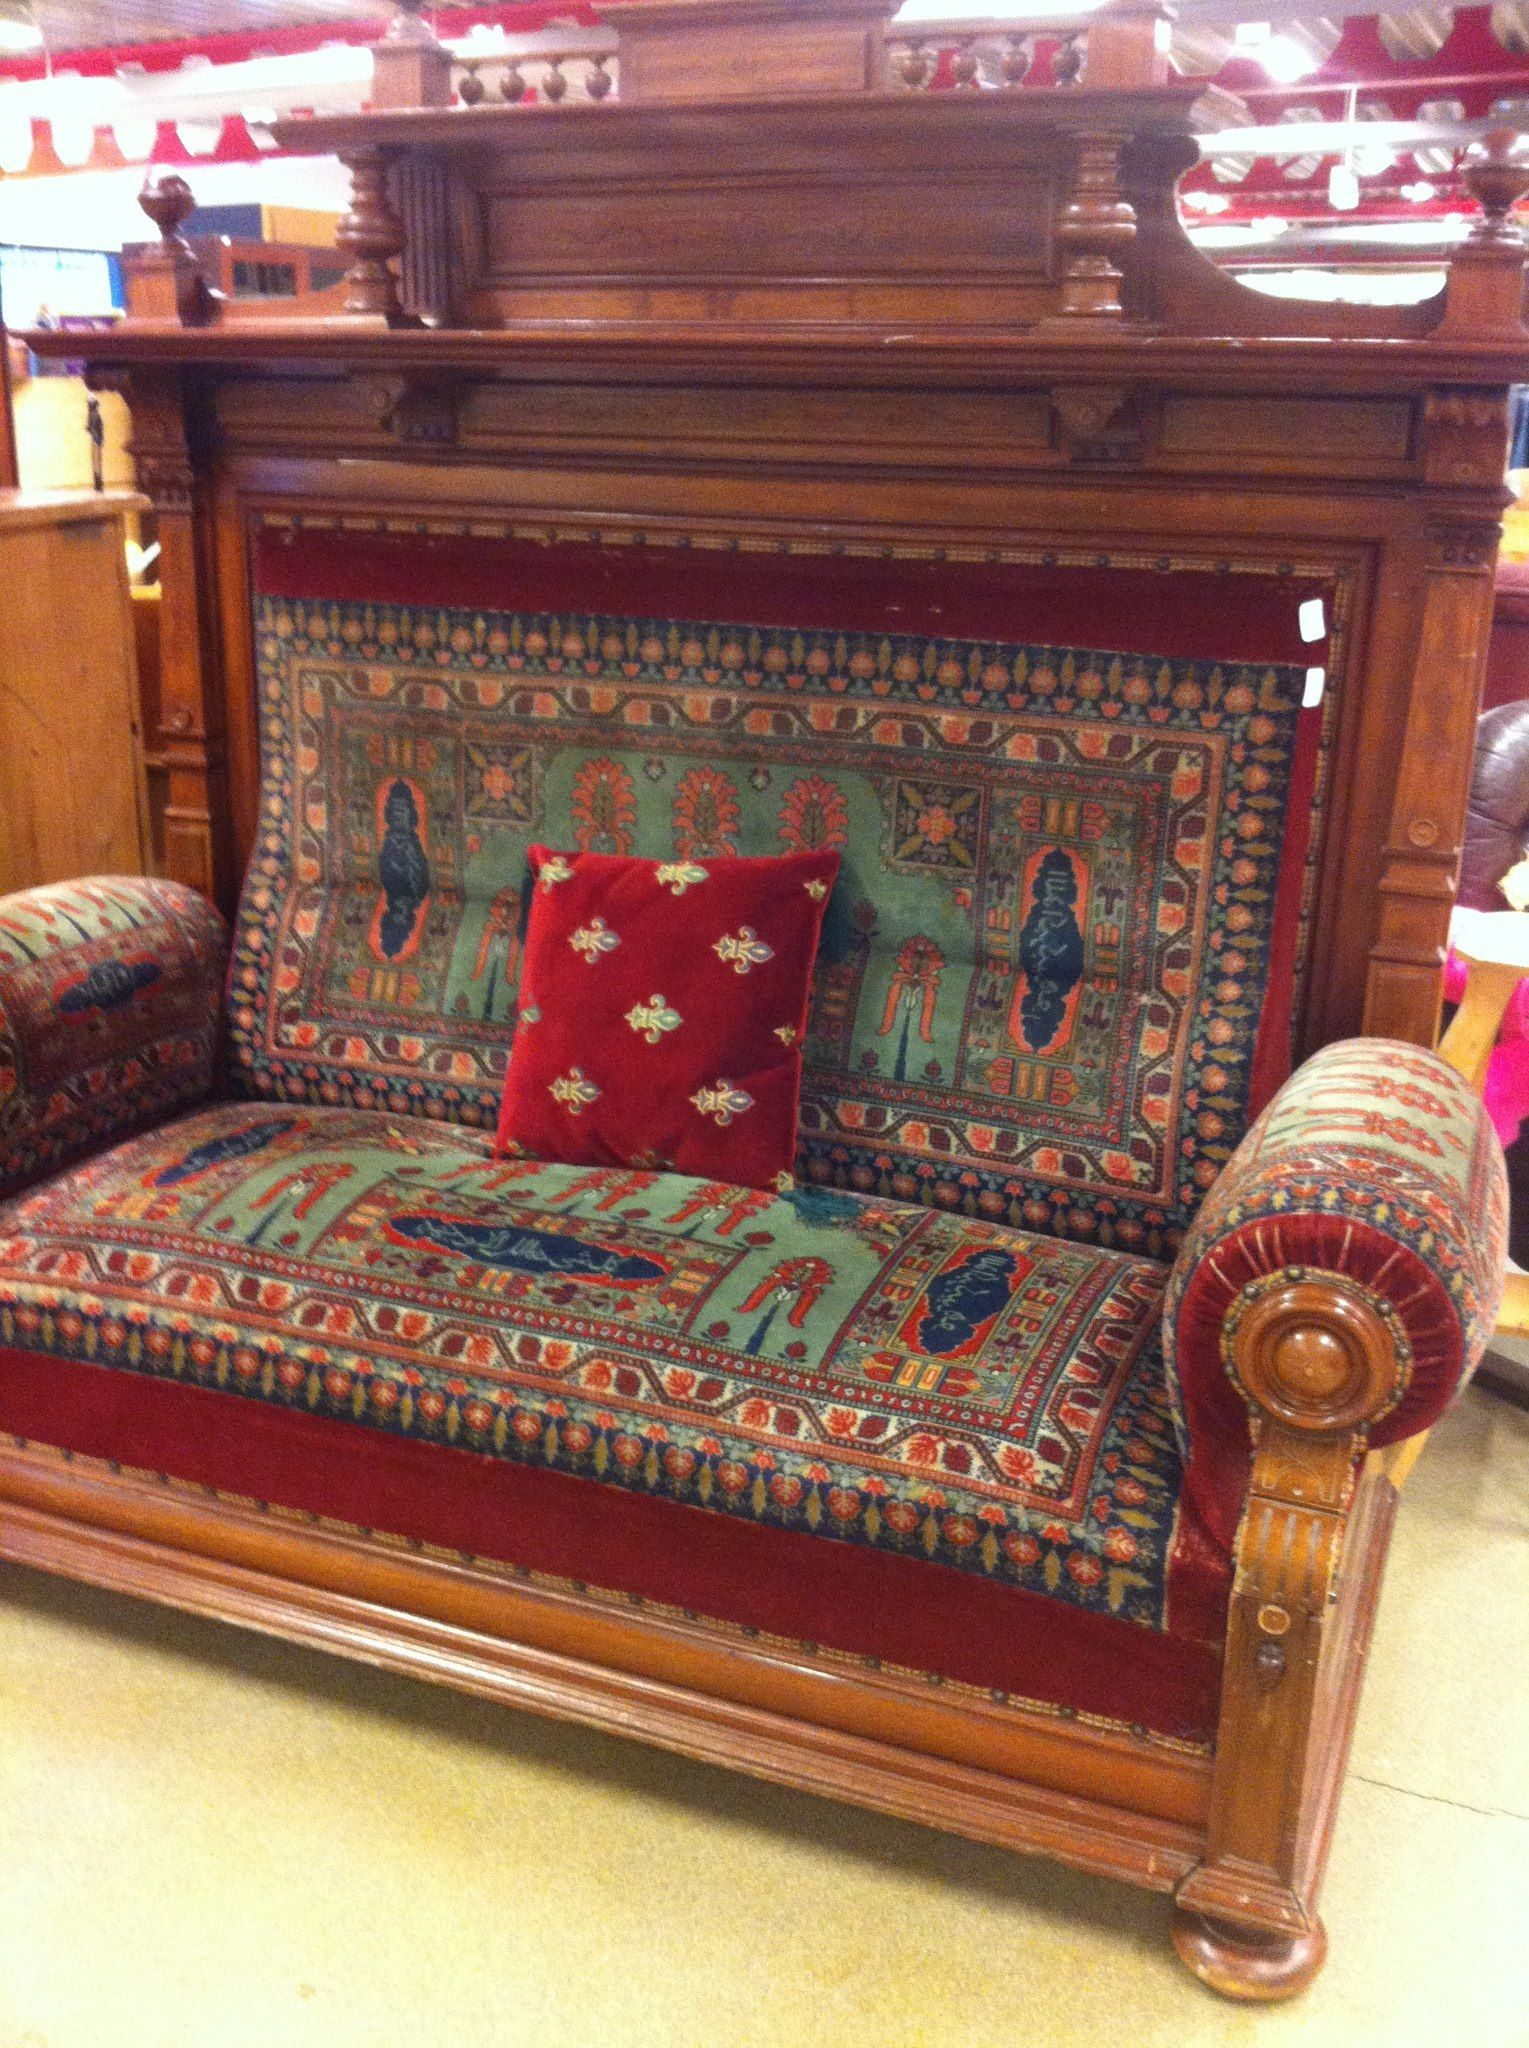 19th century mixed styles sofa for sale somewhere near me